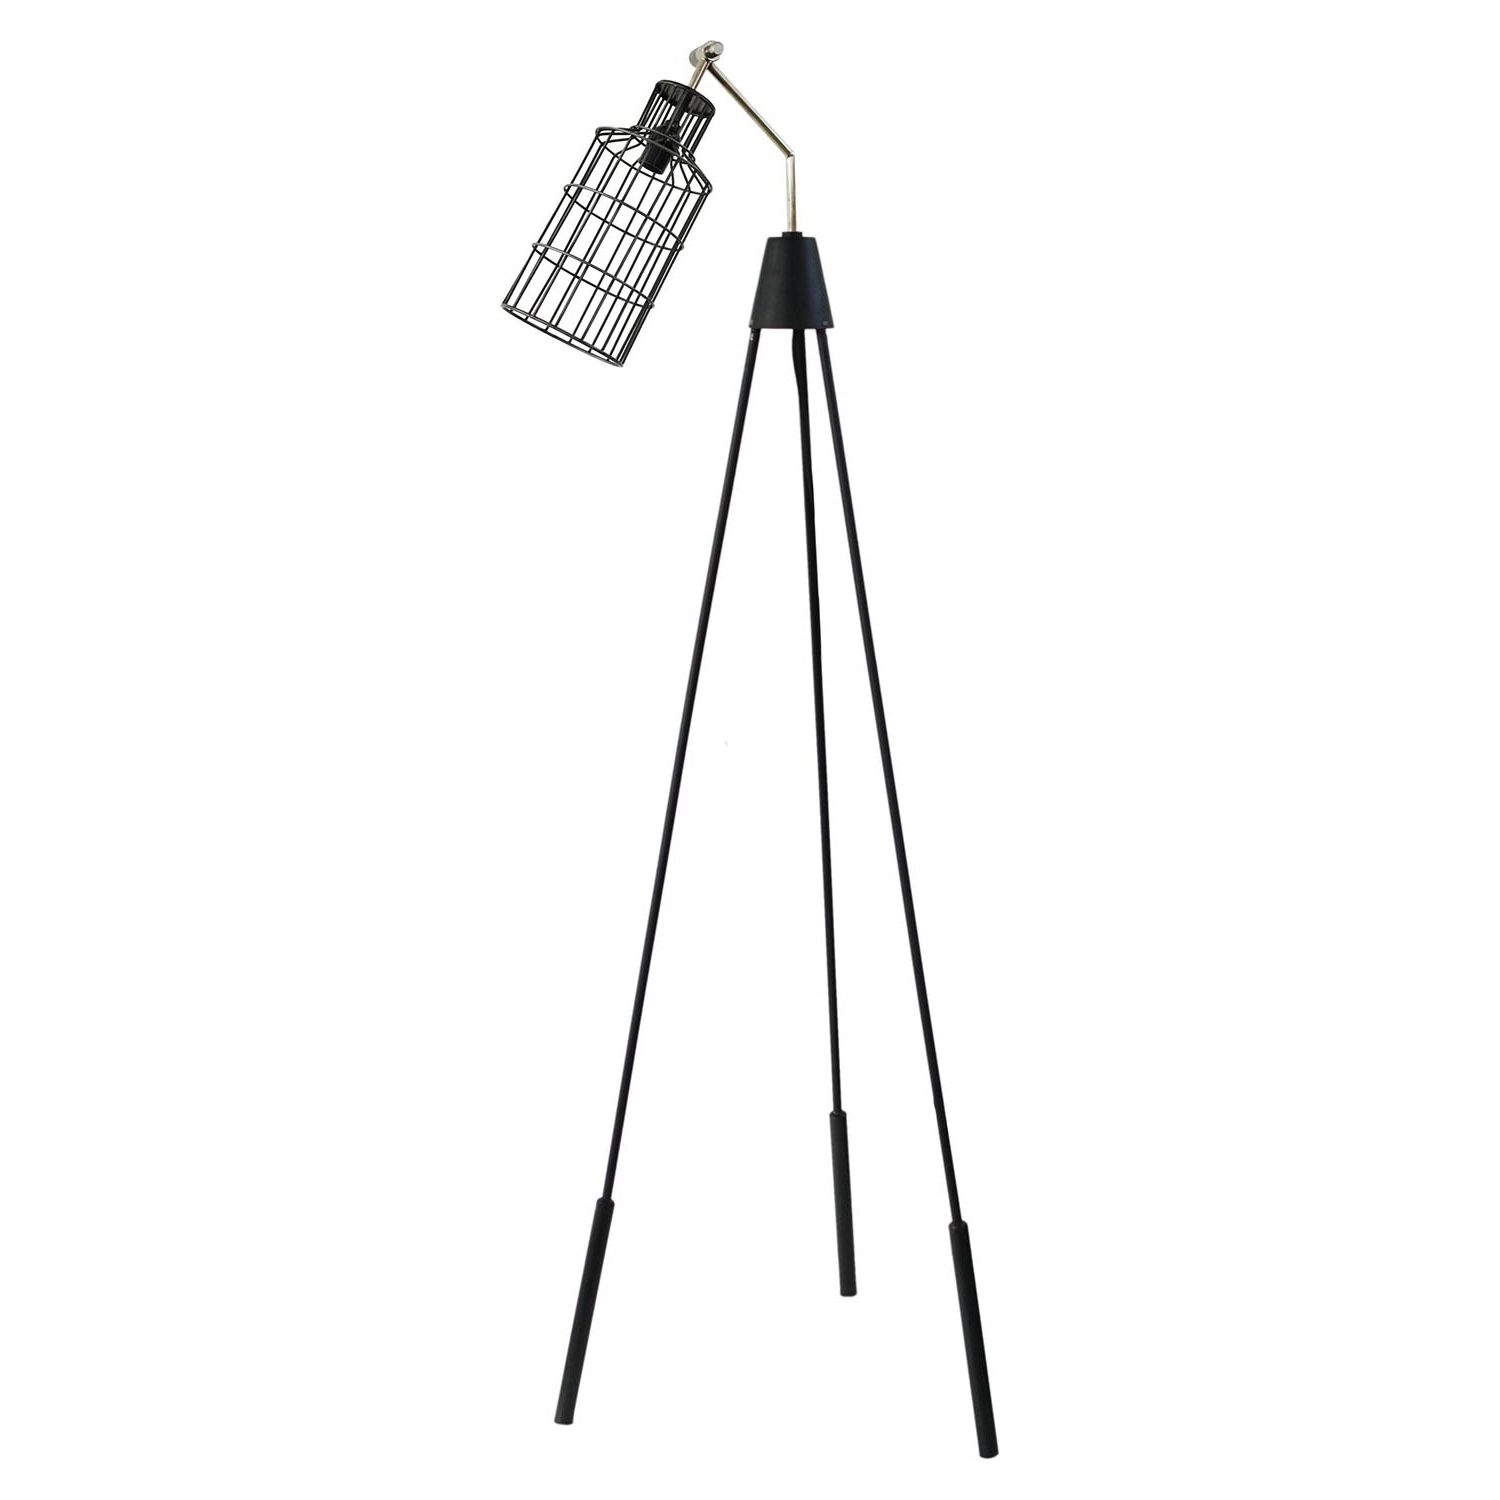 Desi Floor Lamp - Black, Silver Neck - MOES-FD-1003-02